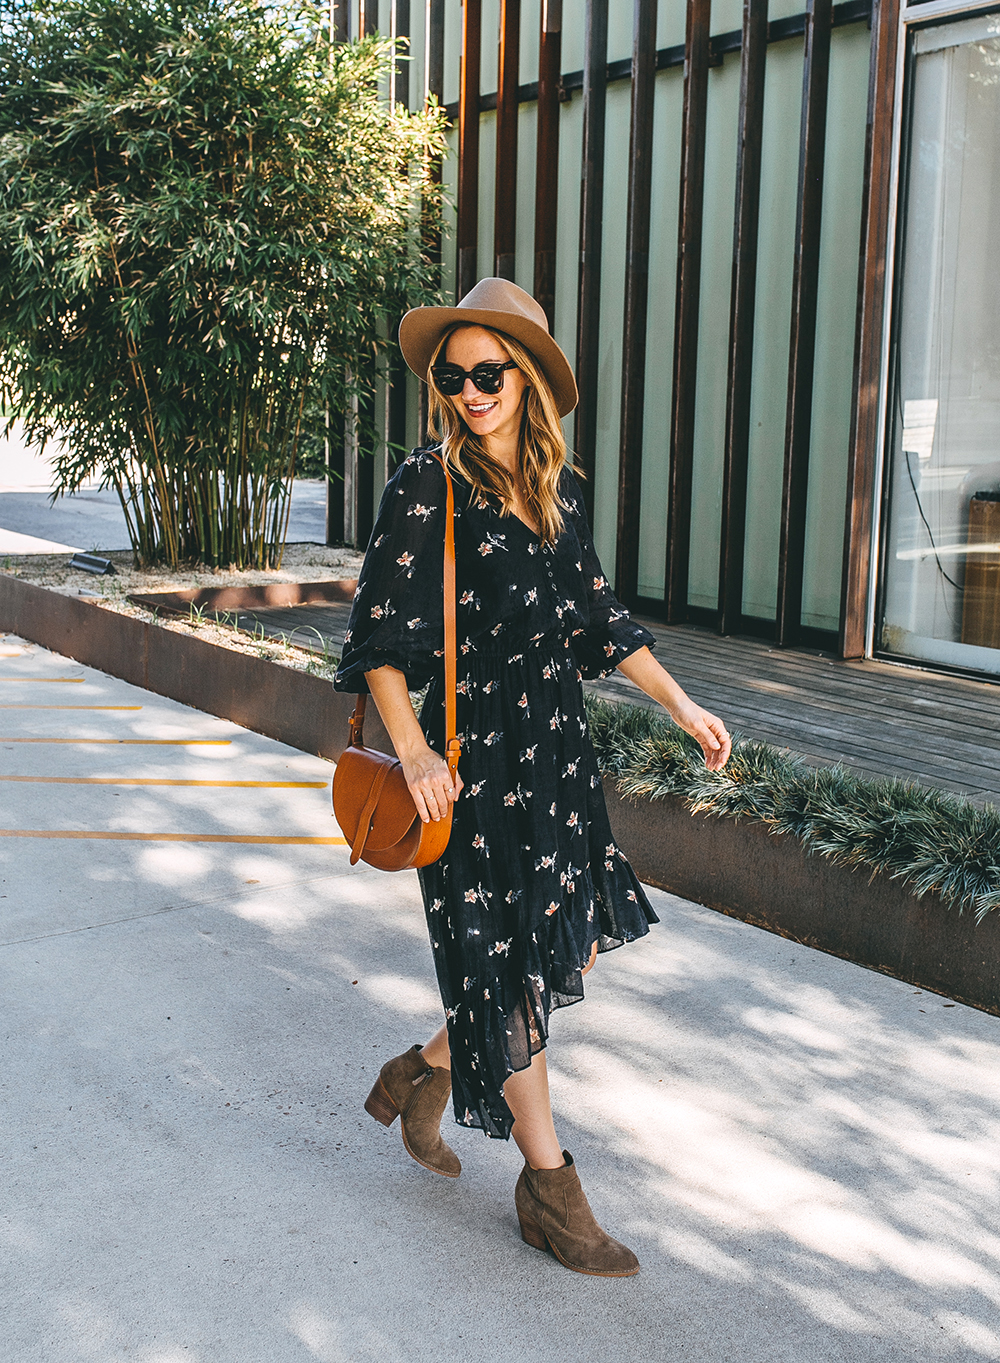 livvyland-blog-olivia-watson-austin-texas-fashion-blogger-domain-northside-joie-fall-dress-ankle-booties-outfit-5